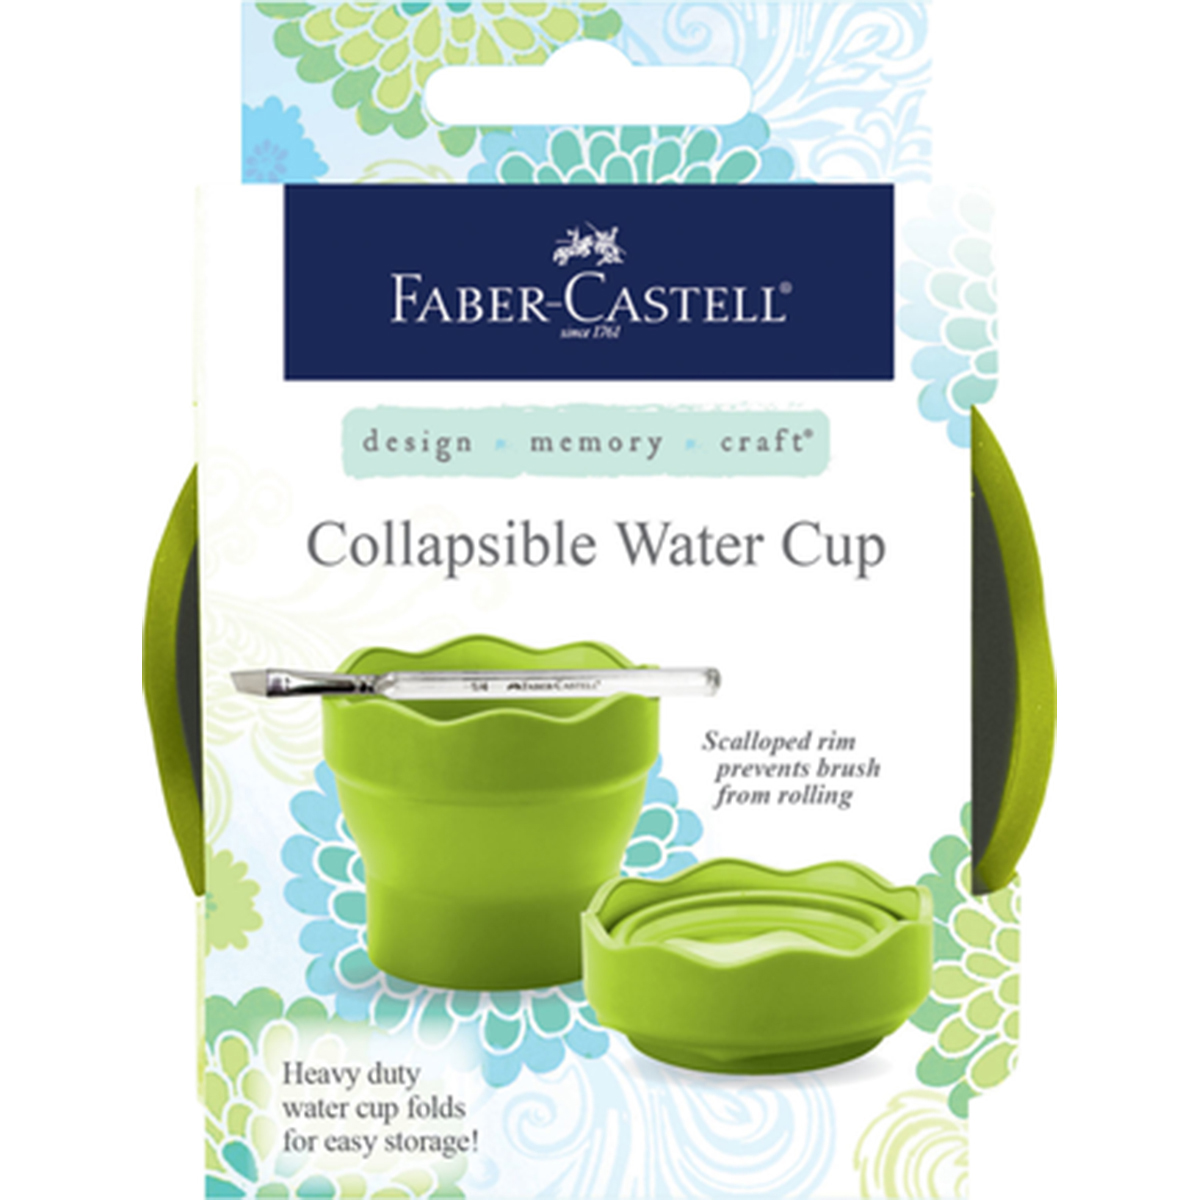 Faber-Castell - Collapsible Water Cup